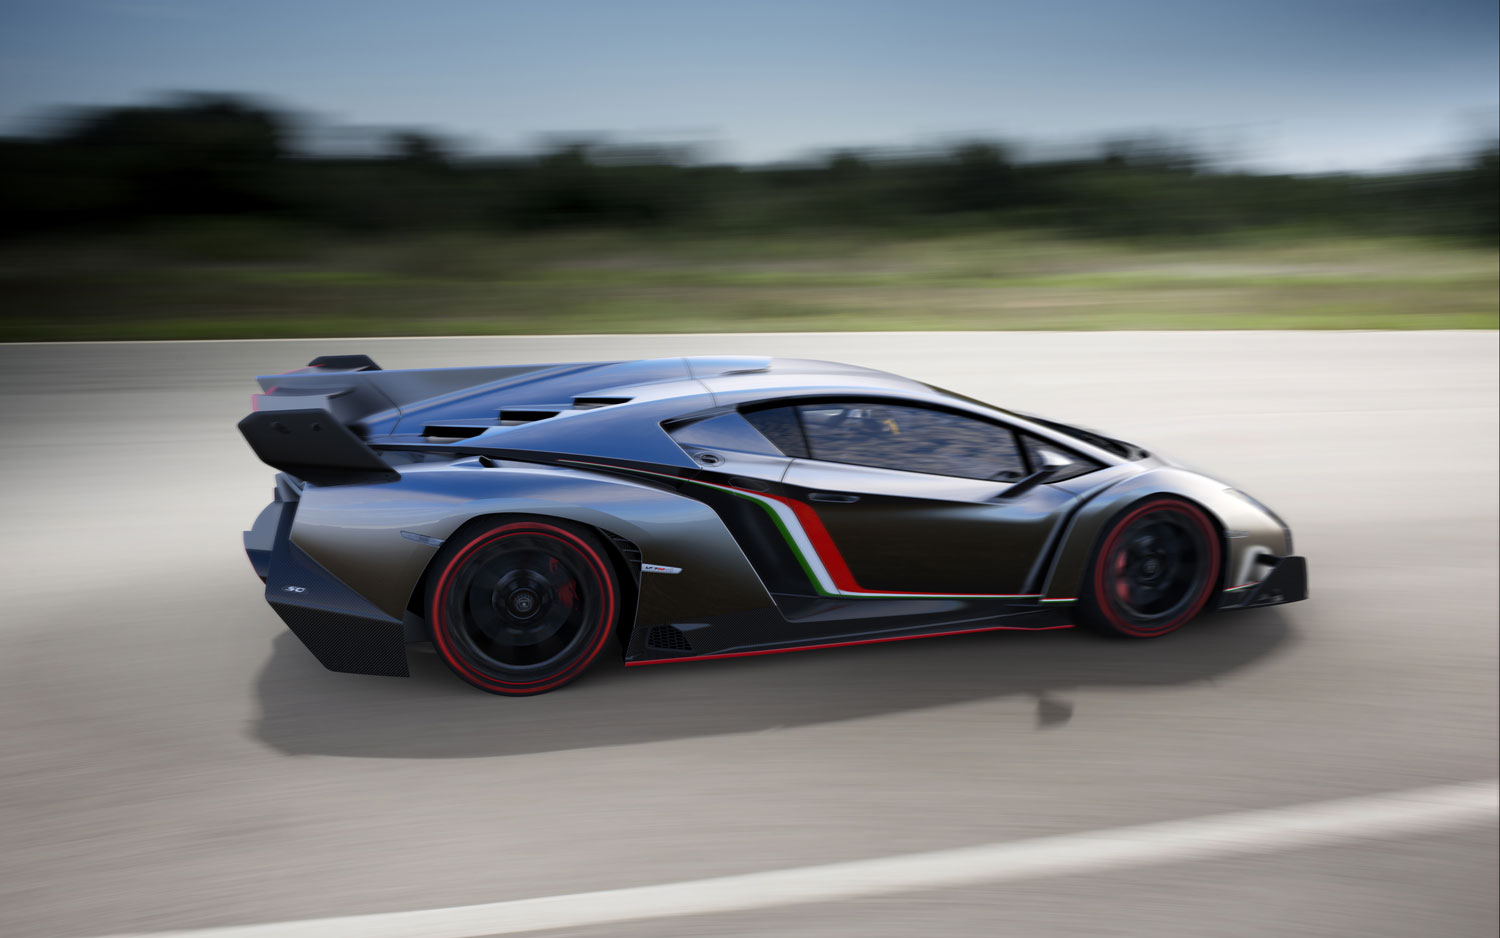 Hyper Rare Lamborghini Veneno Up For Sale For 11 1 Million